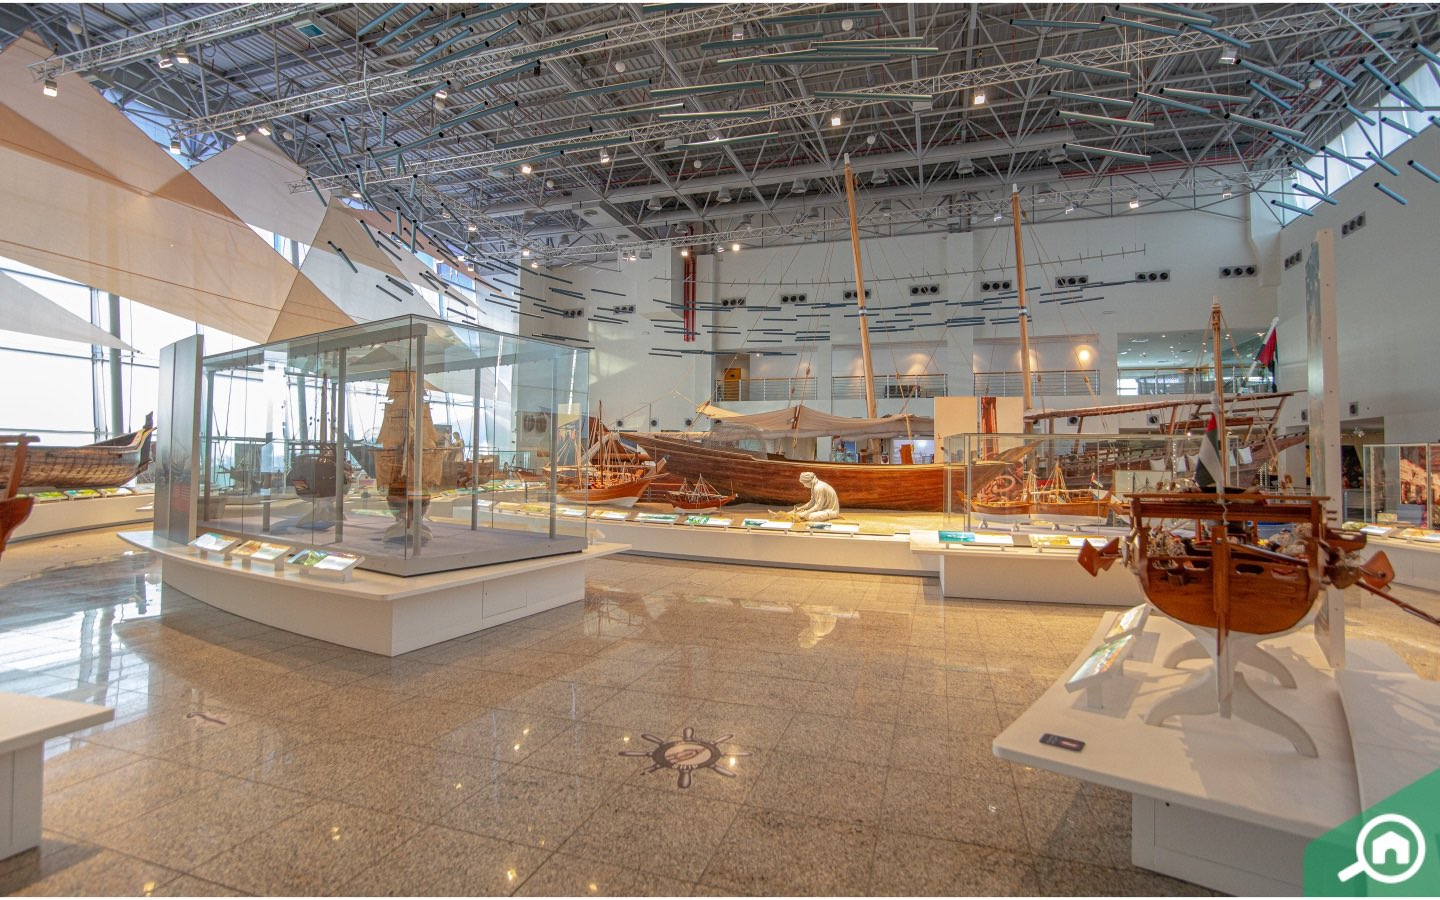 Sharjah maritime museum from inside